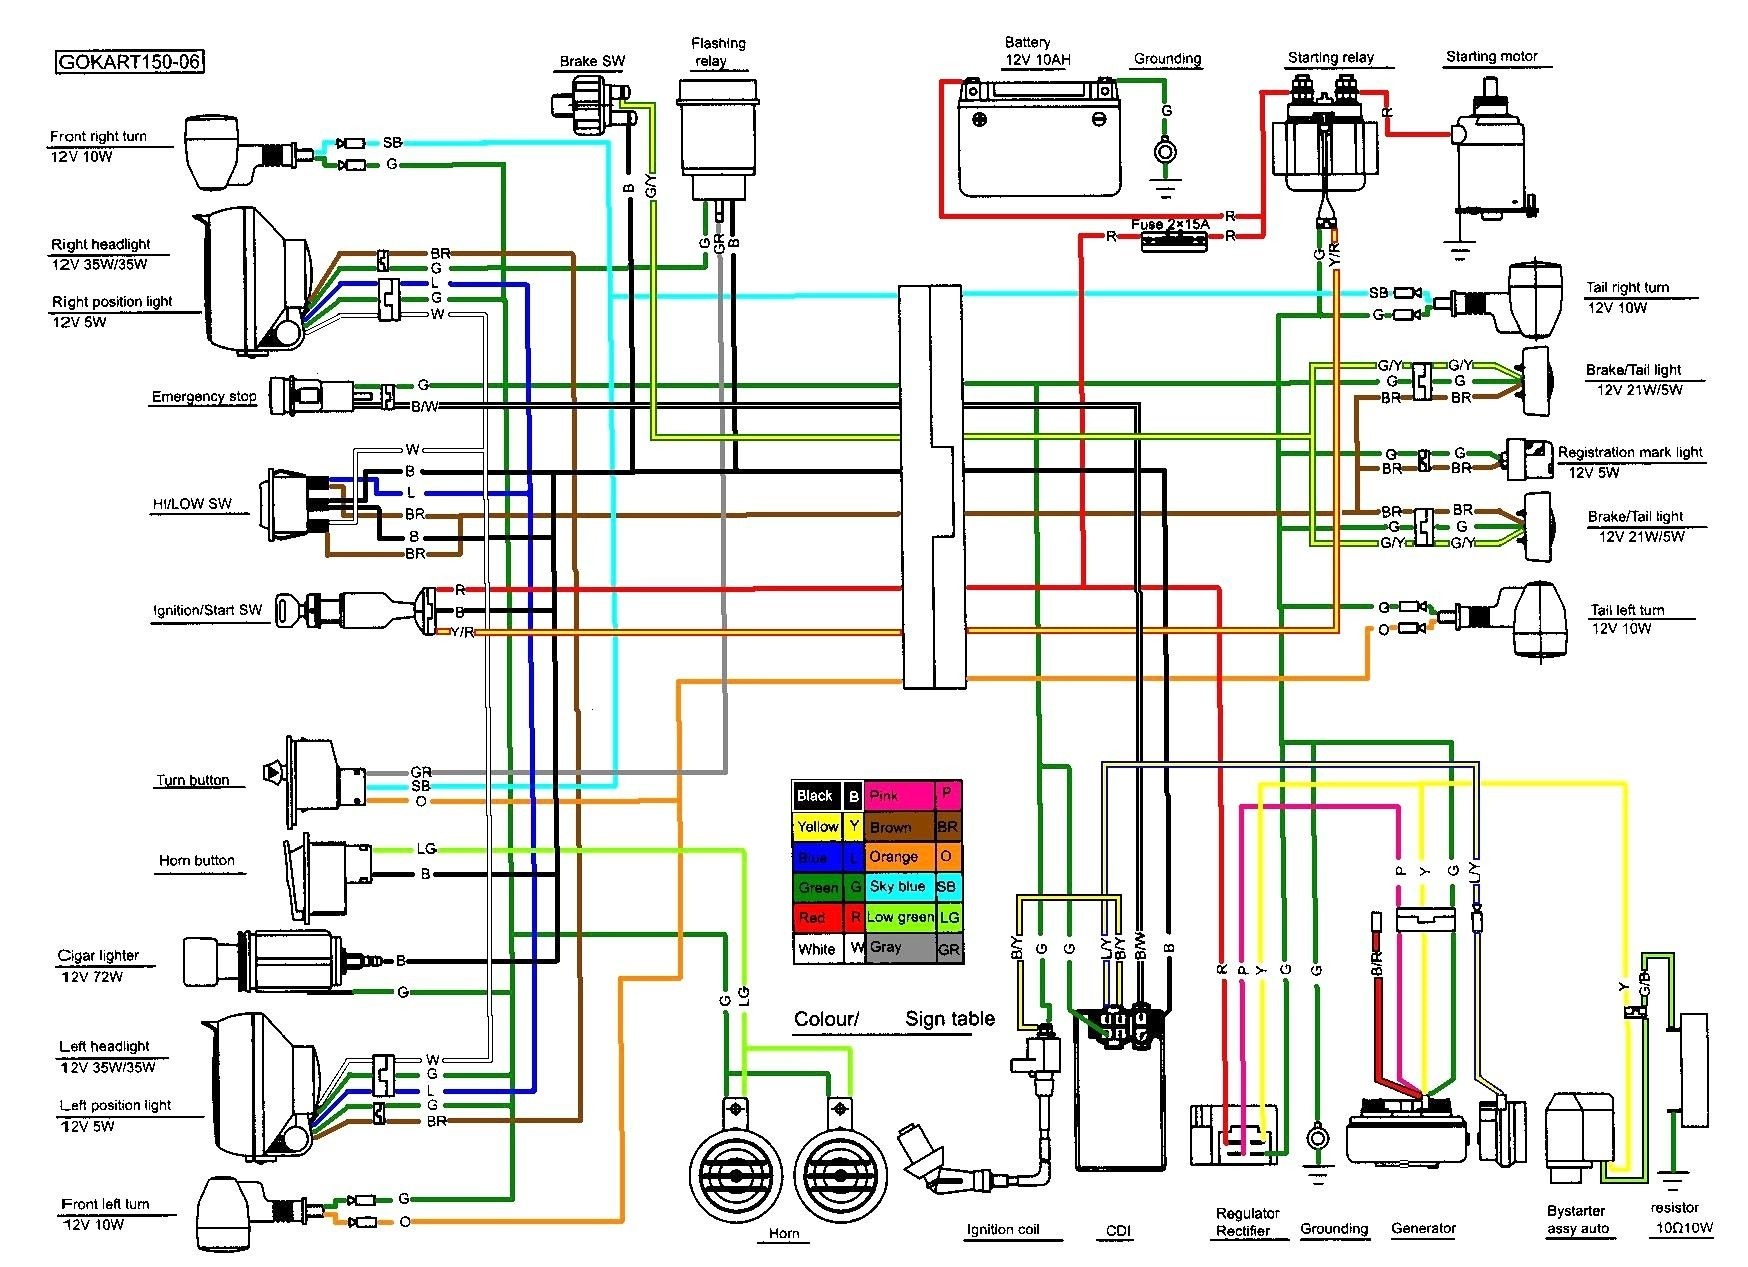 150cc Scooter Wiring Diagram Collection Chinese Scooters Electrical Diagram Electrical Wiring Diagram